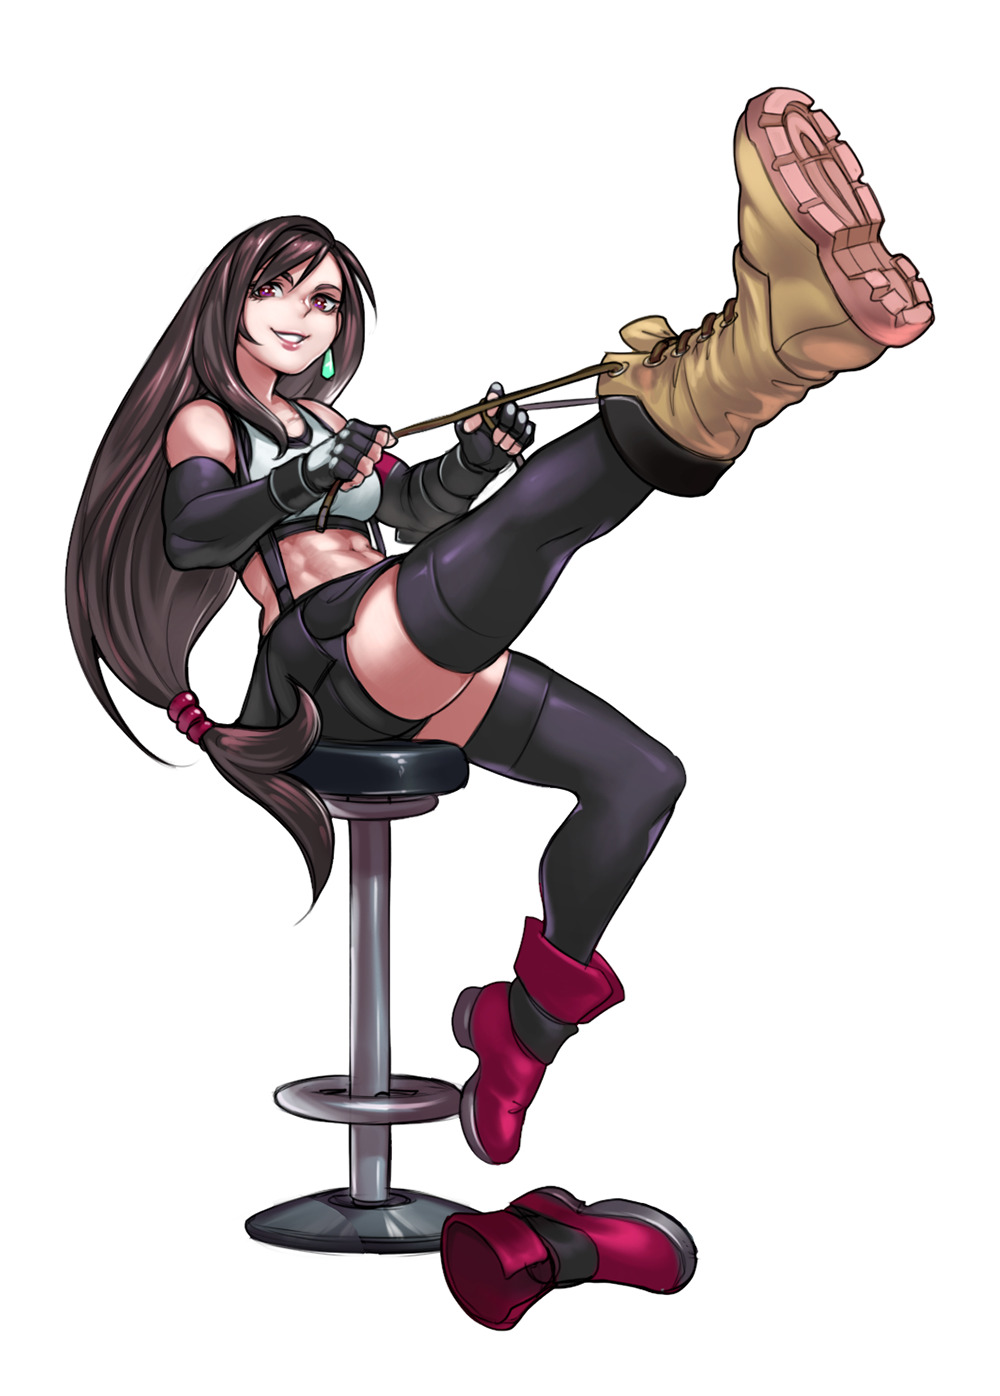 1girl abs alternate_footwear ankle_boots bar_stool bike_shorts black_gloves black_hair black_skirt boots breasts combat_boots detached_sleeves earrings final_fantasy final_fantasy_vii final_fantasy_vii_remake fingerless_gloves full_body gloves highres jewelry leg_lift leg_up lips long_hair looking_at_viewer low-tied_long_hair medium_breasts midriff mismatched_footwear plantar_flexion shorts shorts_under_skirt sitting skirt solo sports_bra stool suspender_skirt suspenders thigh-highs tifa_lockhart toned violet_eyes voodoothur white_background